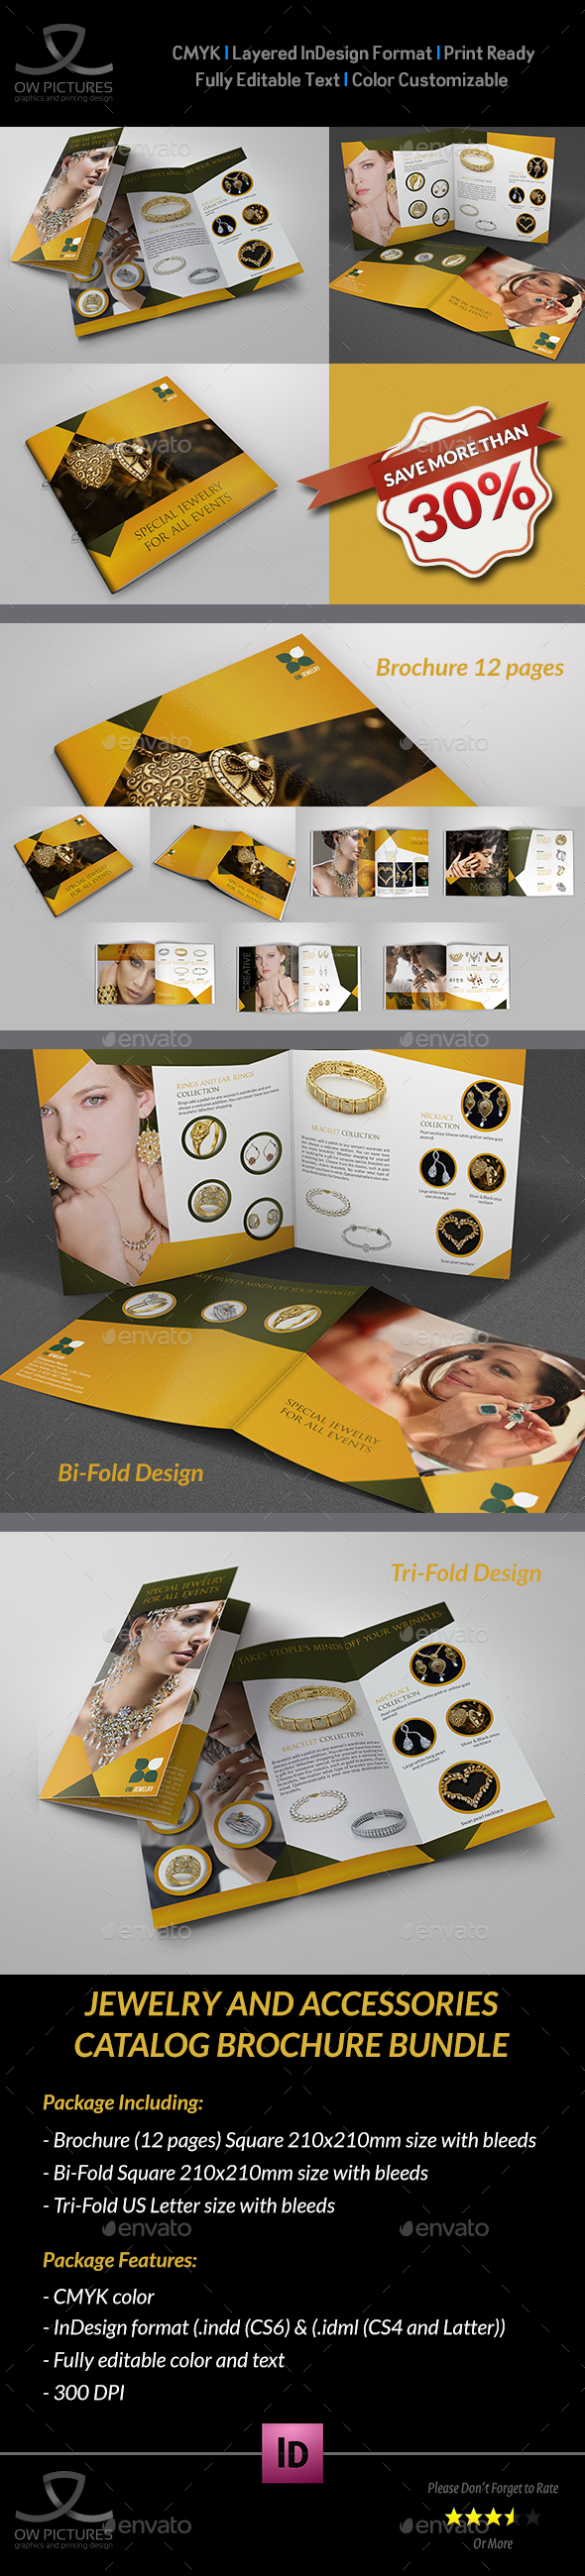 Jewelry and Accessories Catalog Brochure Bundle - Brochures Print Templates